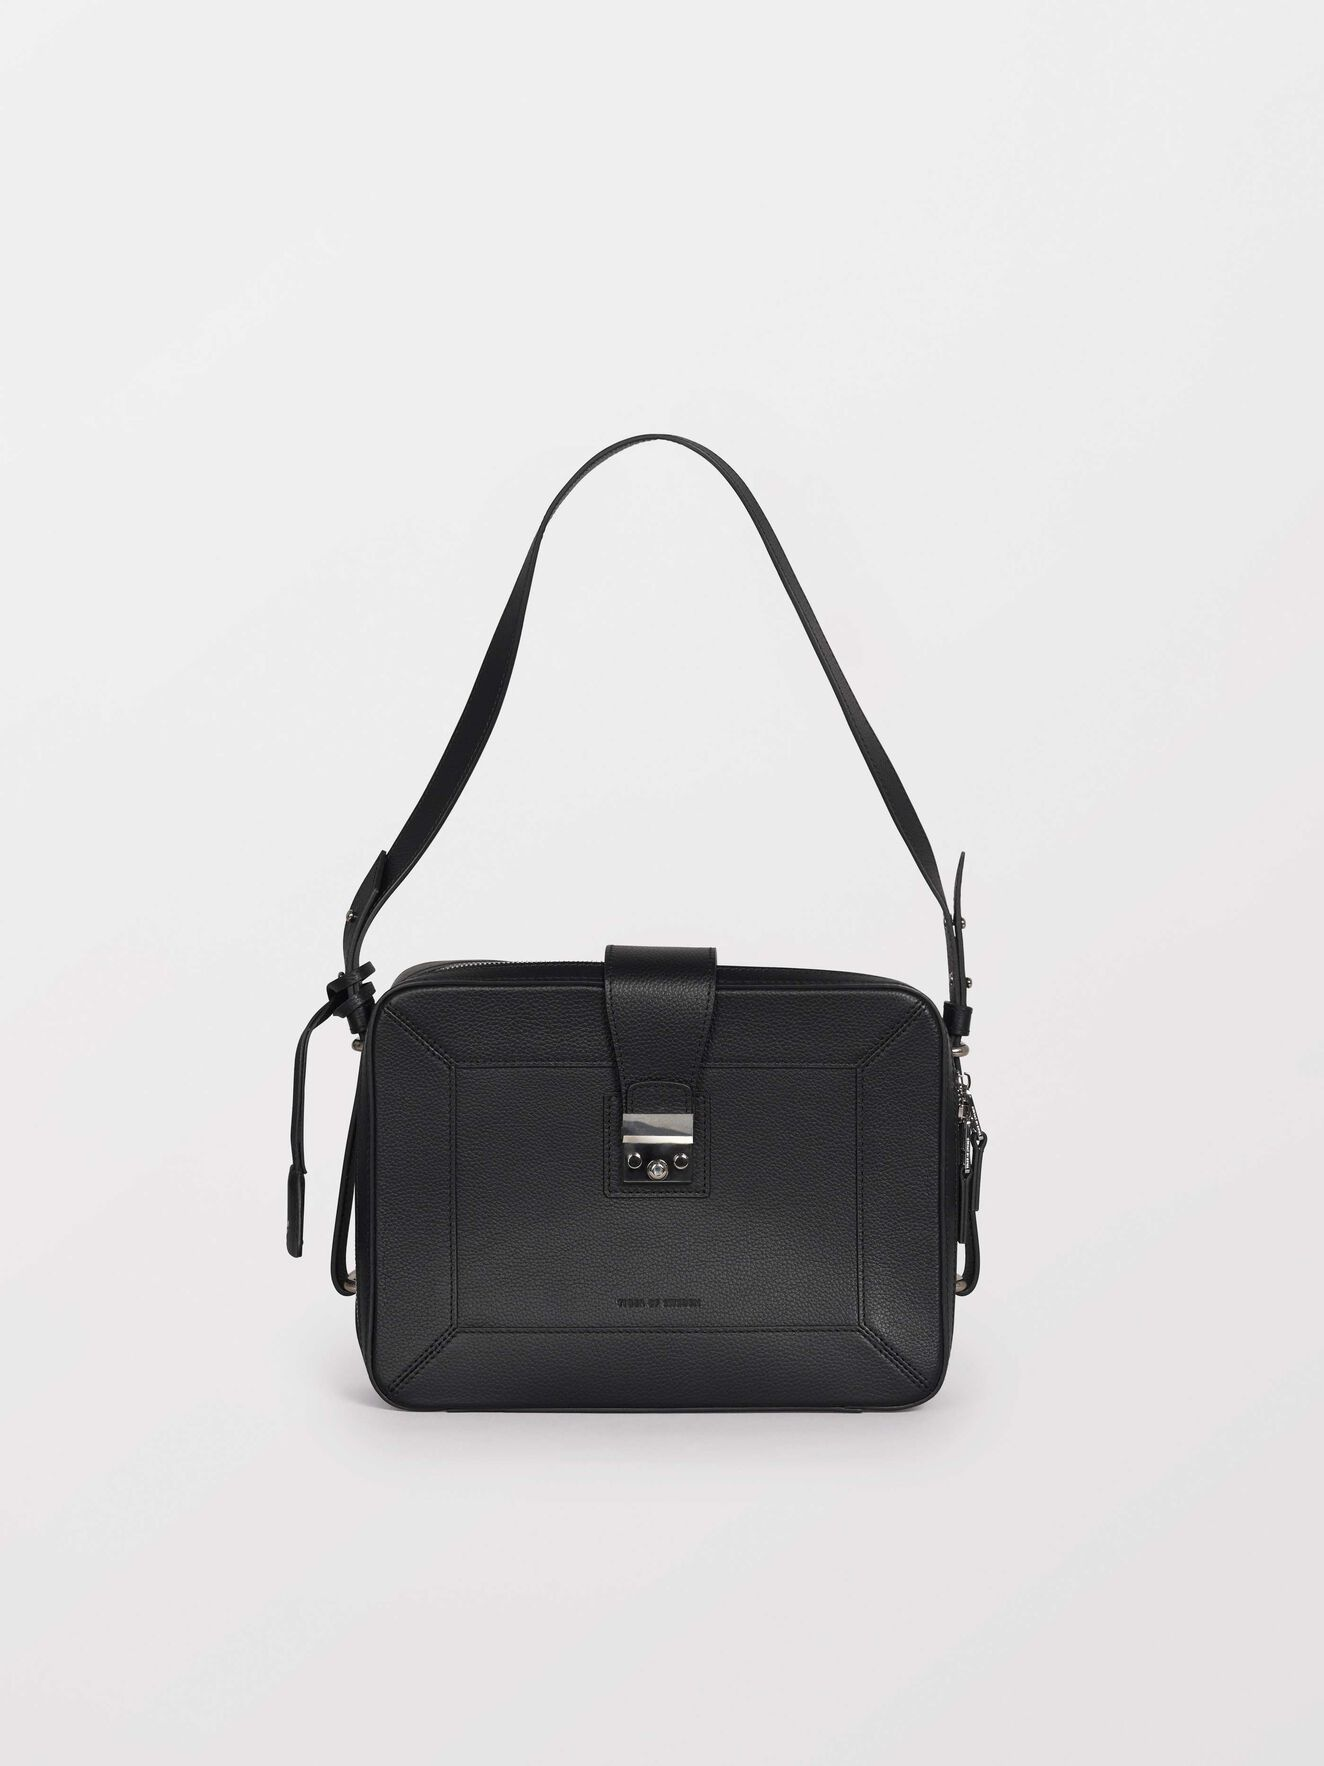 Beau Bag in Black from Tiger of Sweden